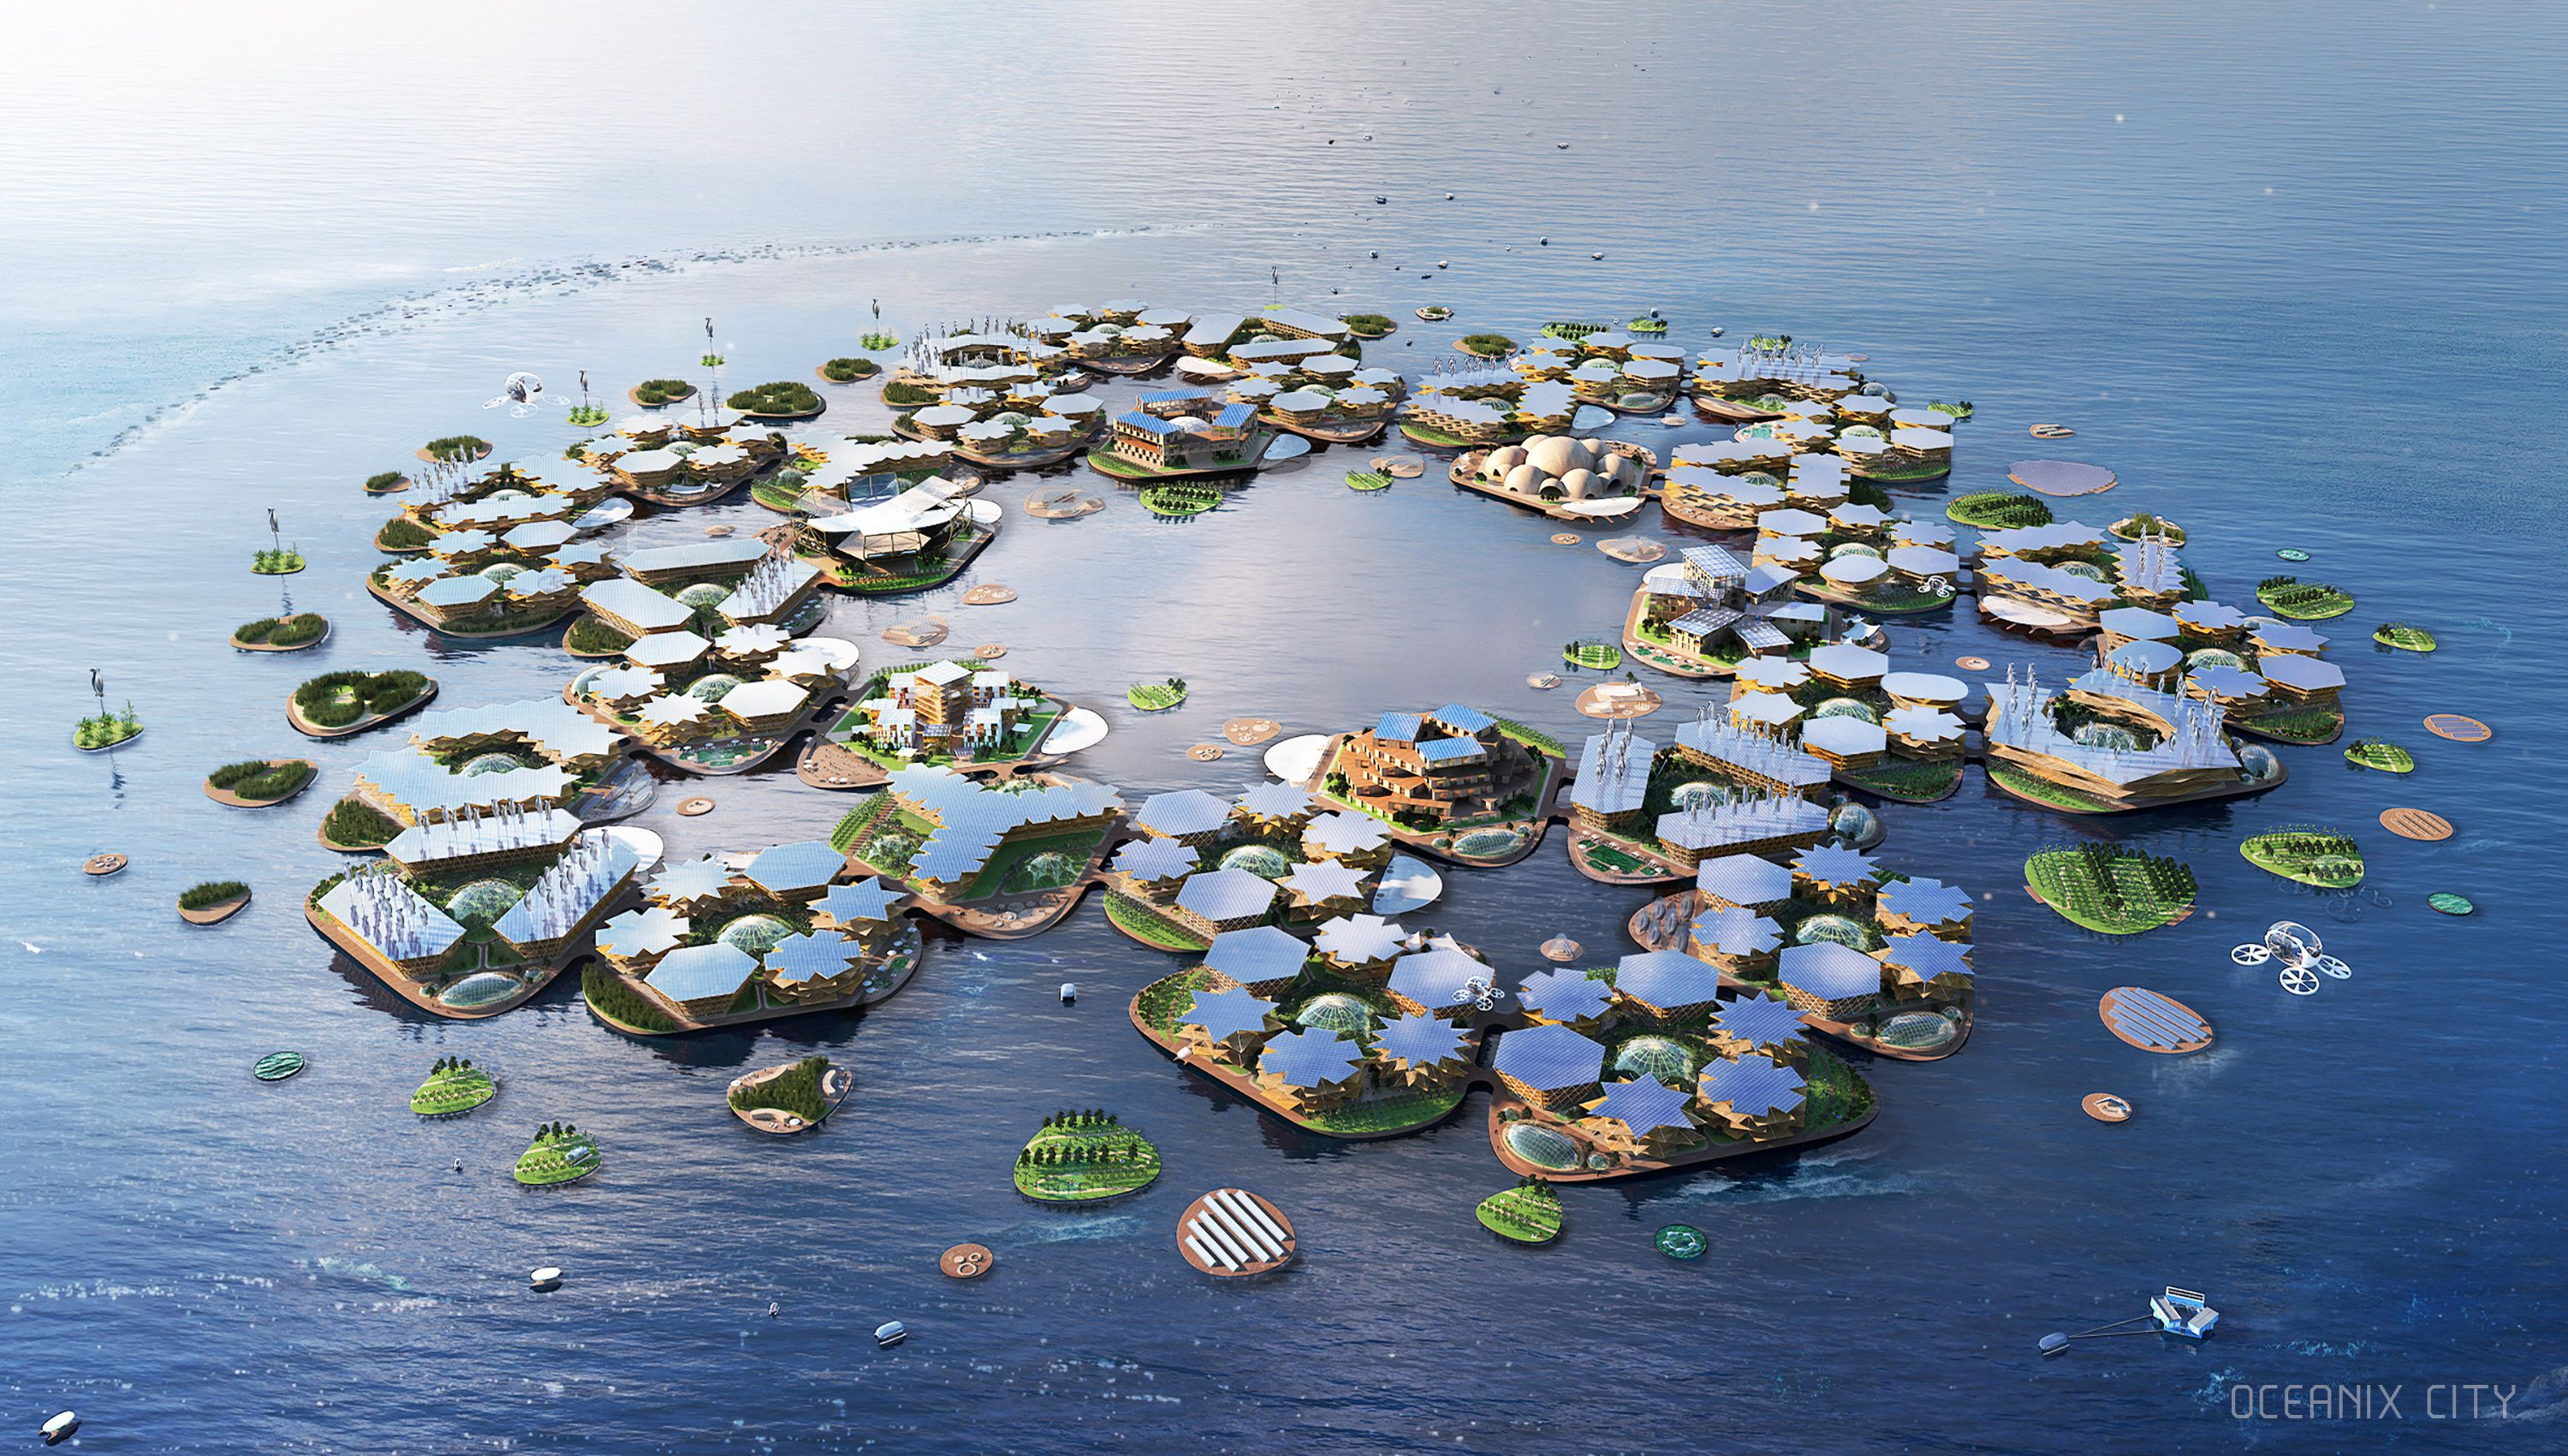 Floating city